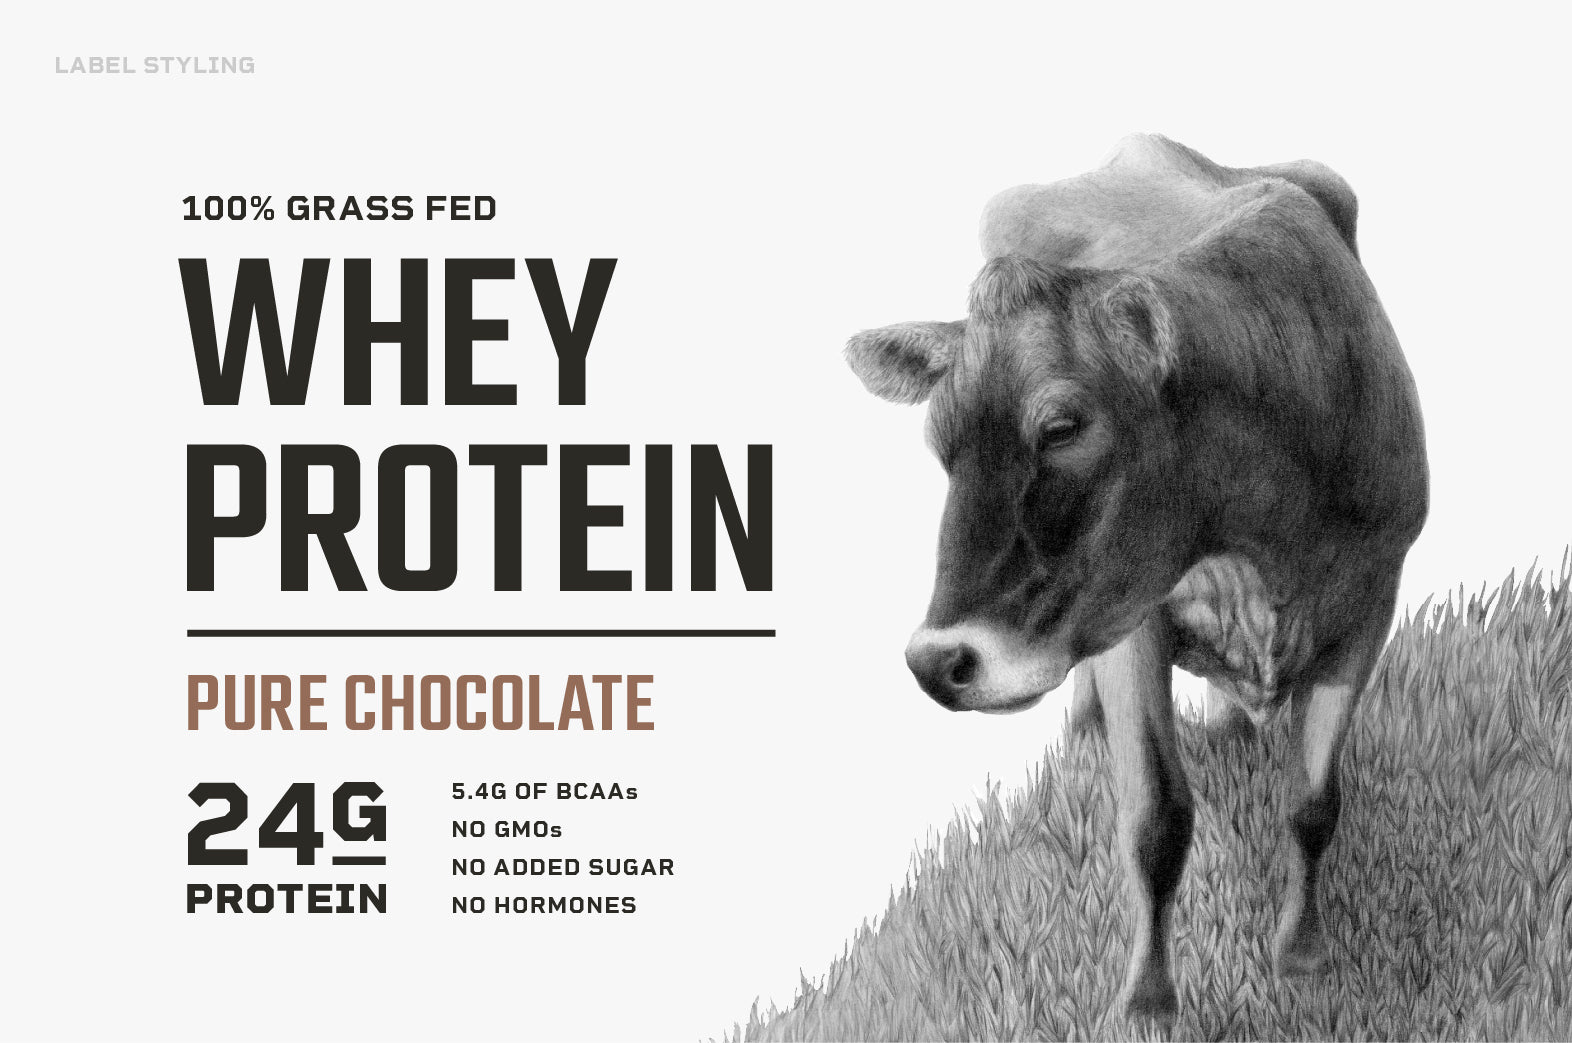 Levels new grass-fed whey protein labels